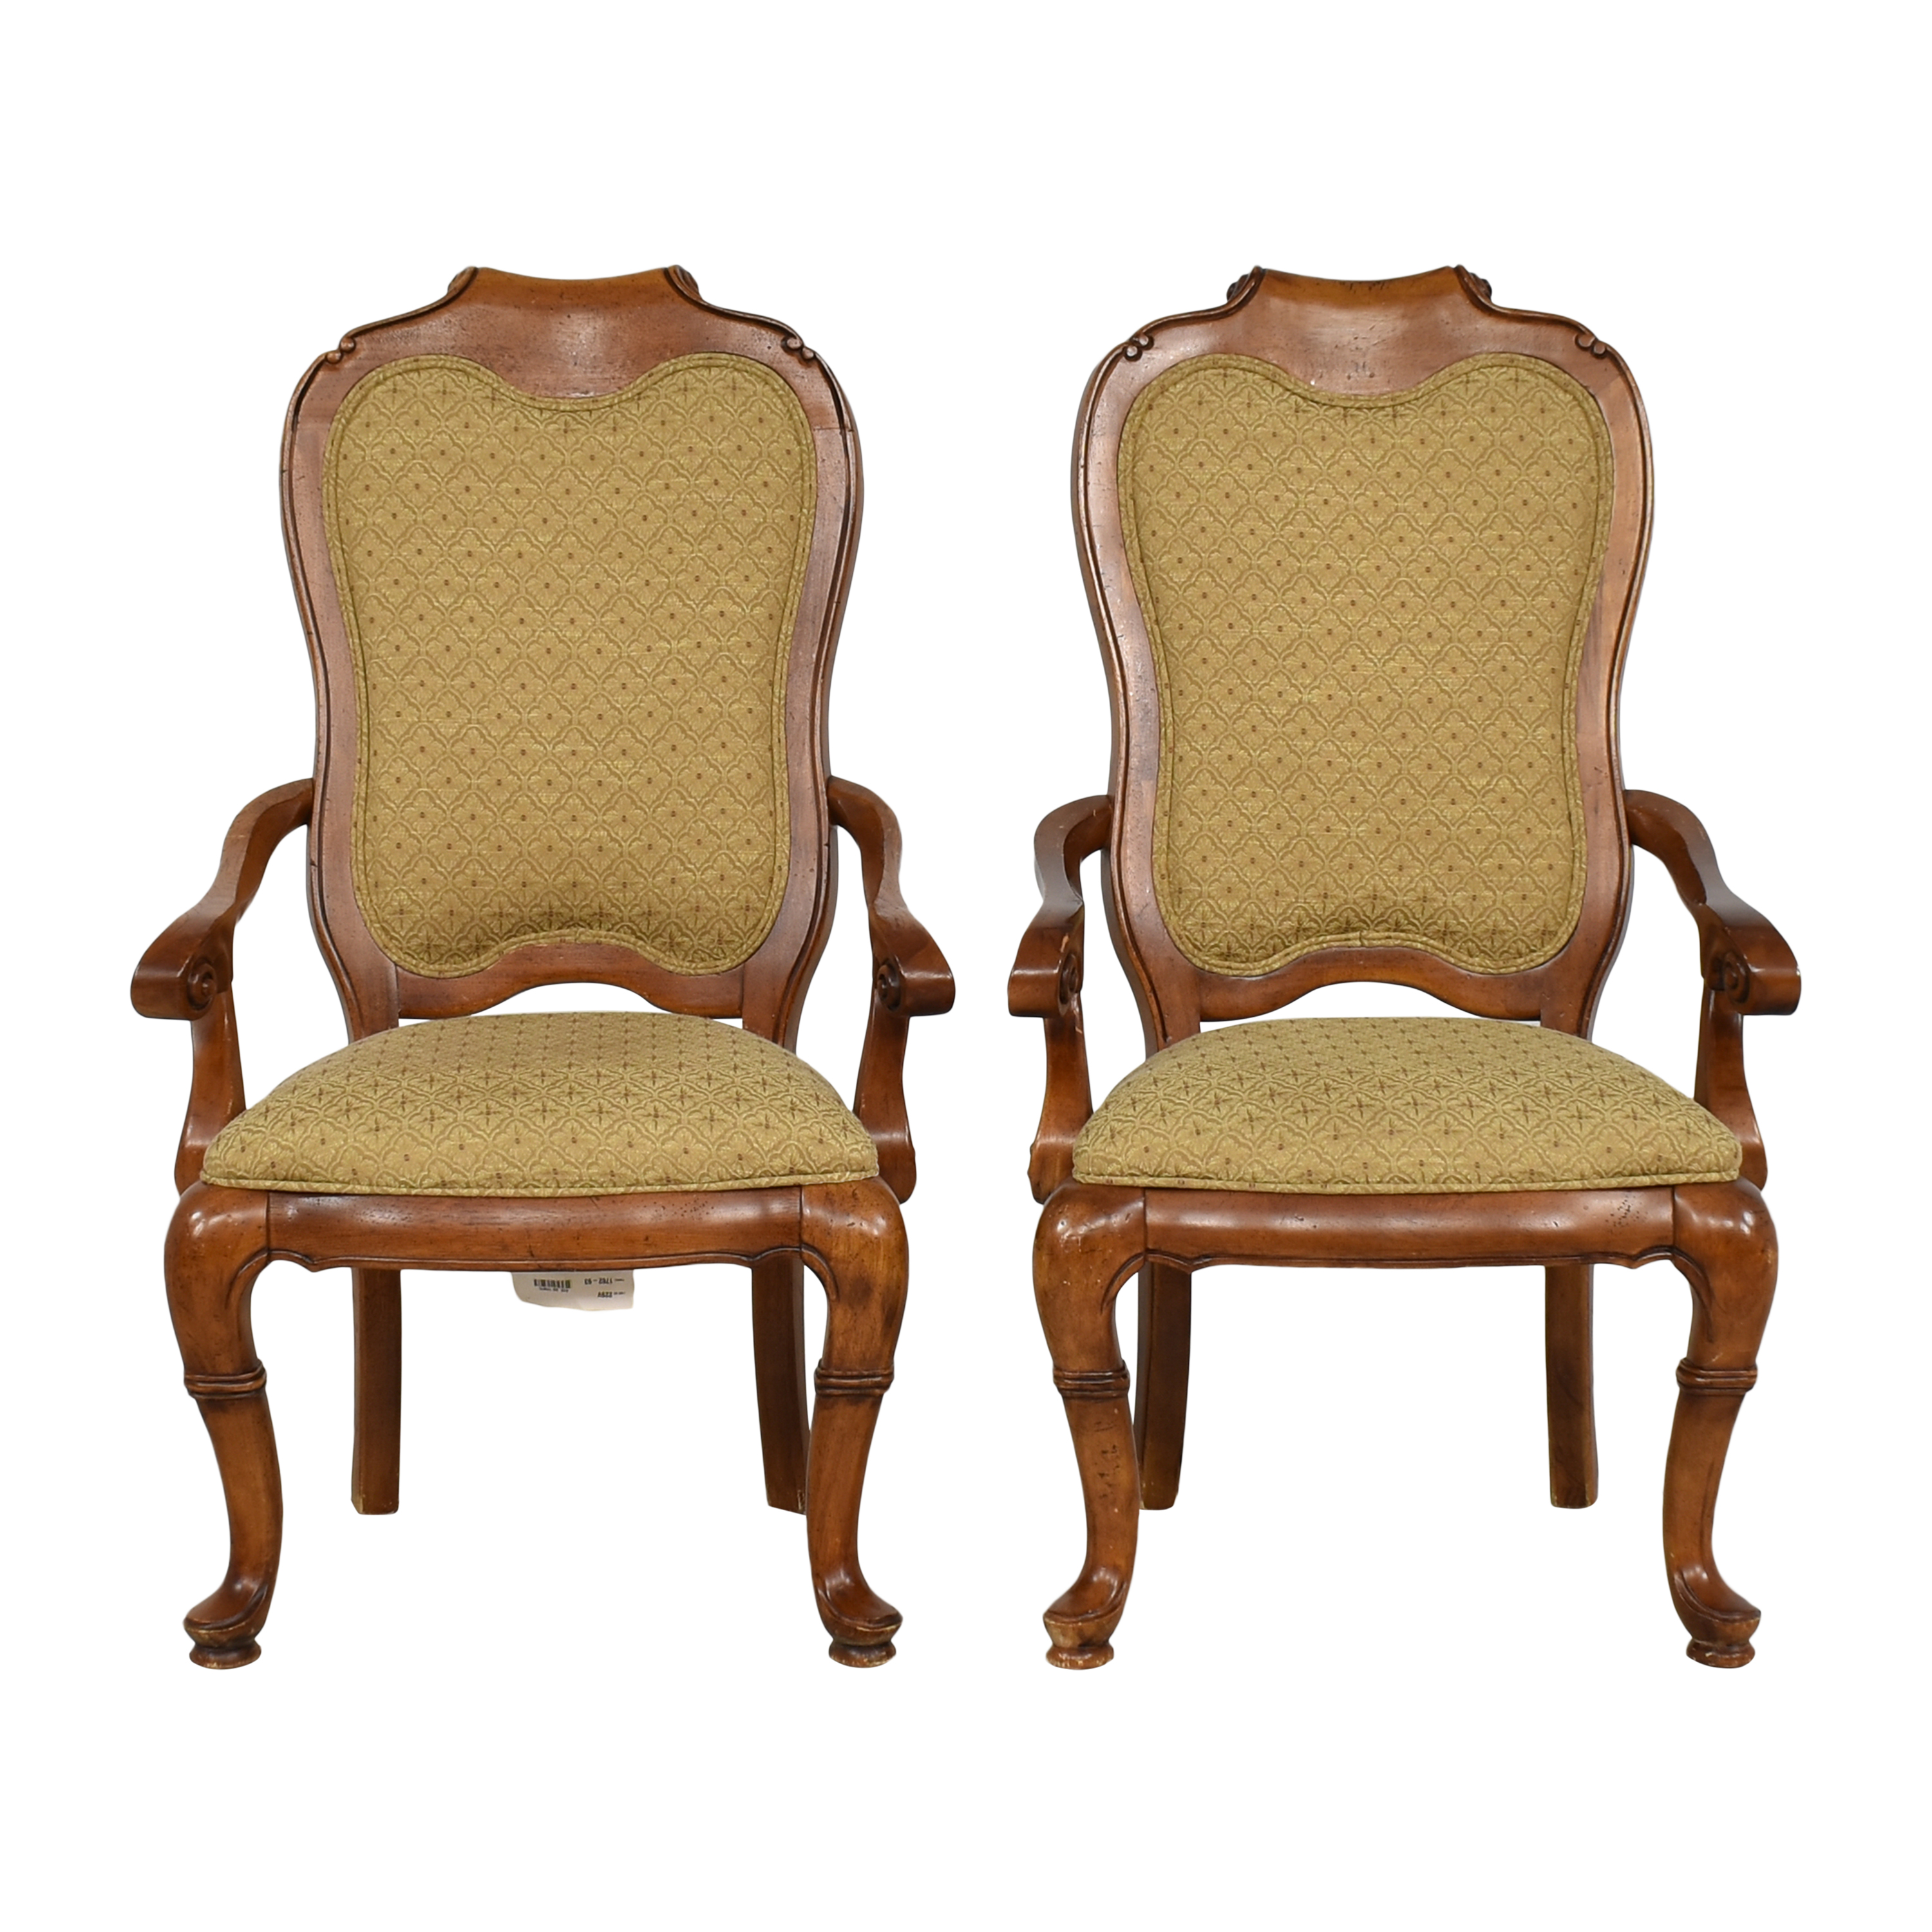 Thomasville Thomasville Upholstered Dining Arm Chairs ct